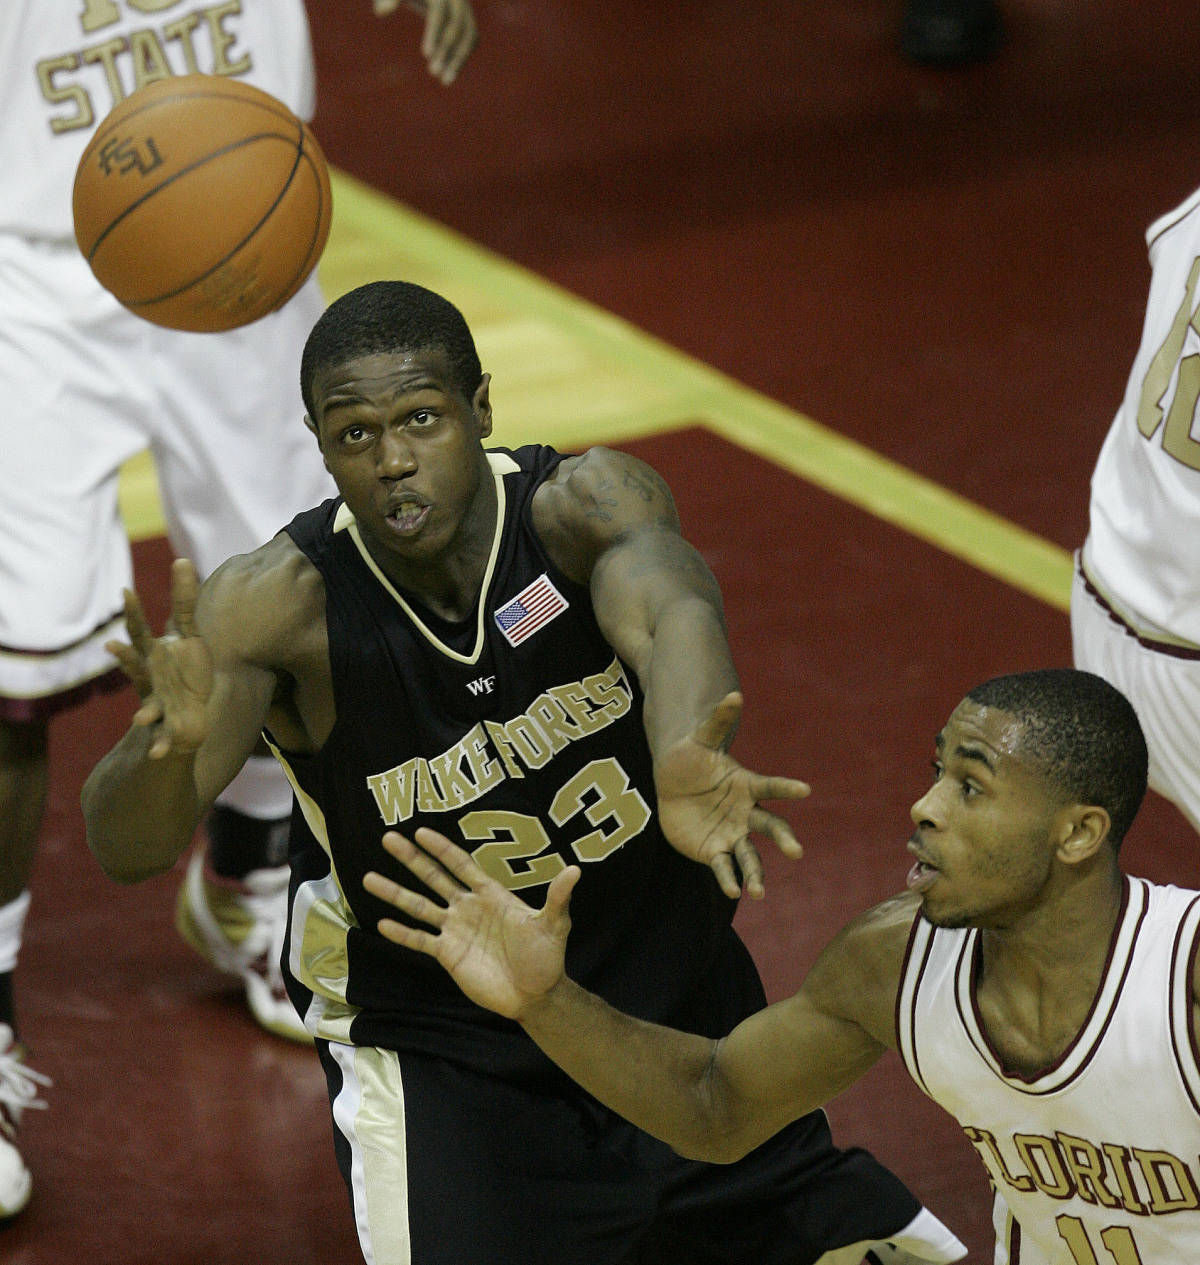 Wake Forest's Kevin Swinton, left, and Florida State's Jerel Allen, right, wait for a rebound in the first half during a college basketball game, Saturday, Jan. 27, 2007, in Tallahassee, Fla. (AP Photo/Phil Coale)